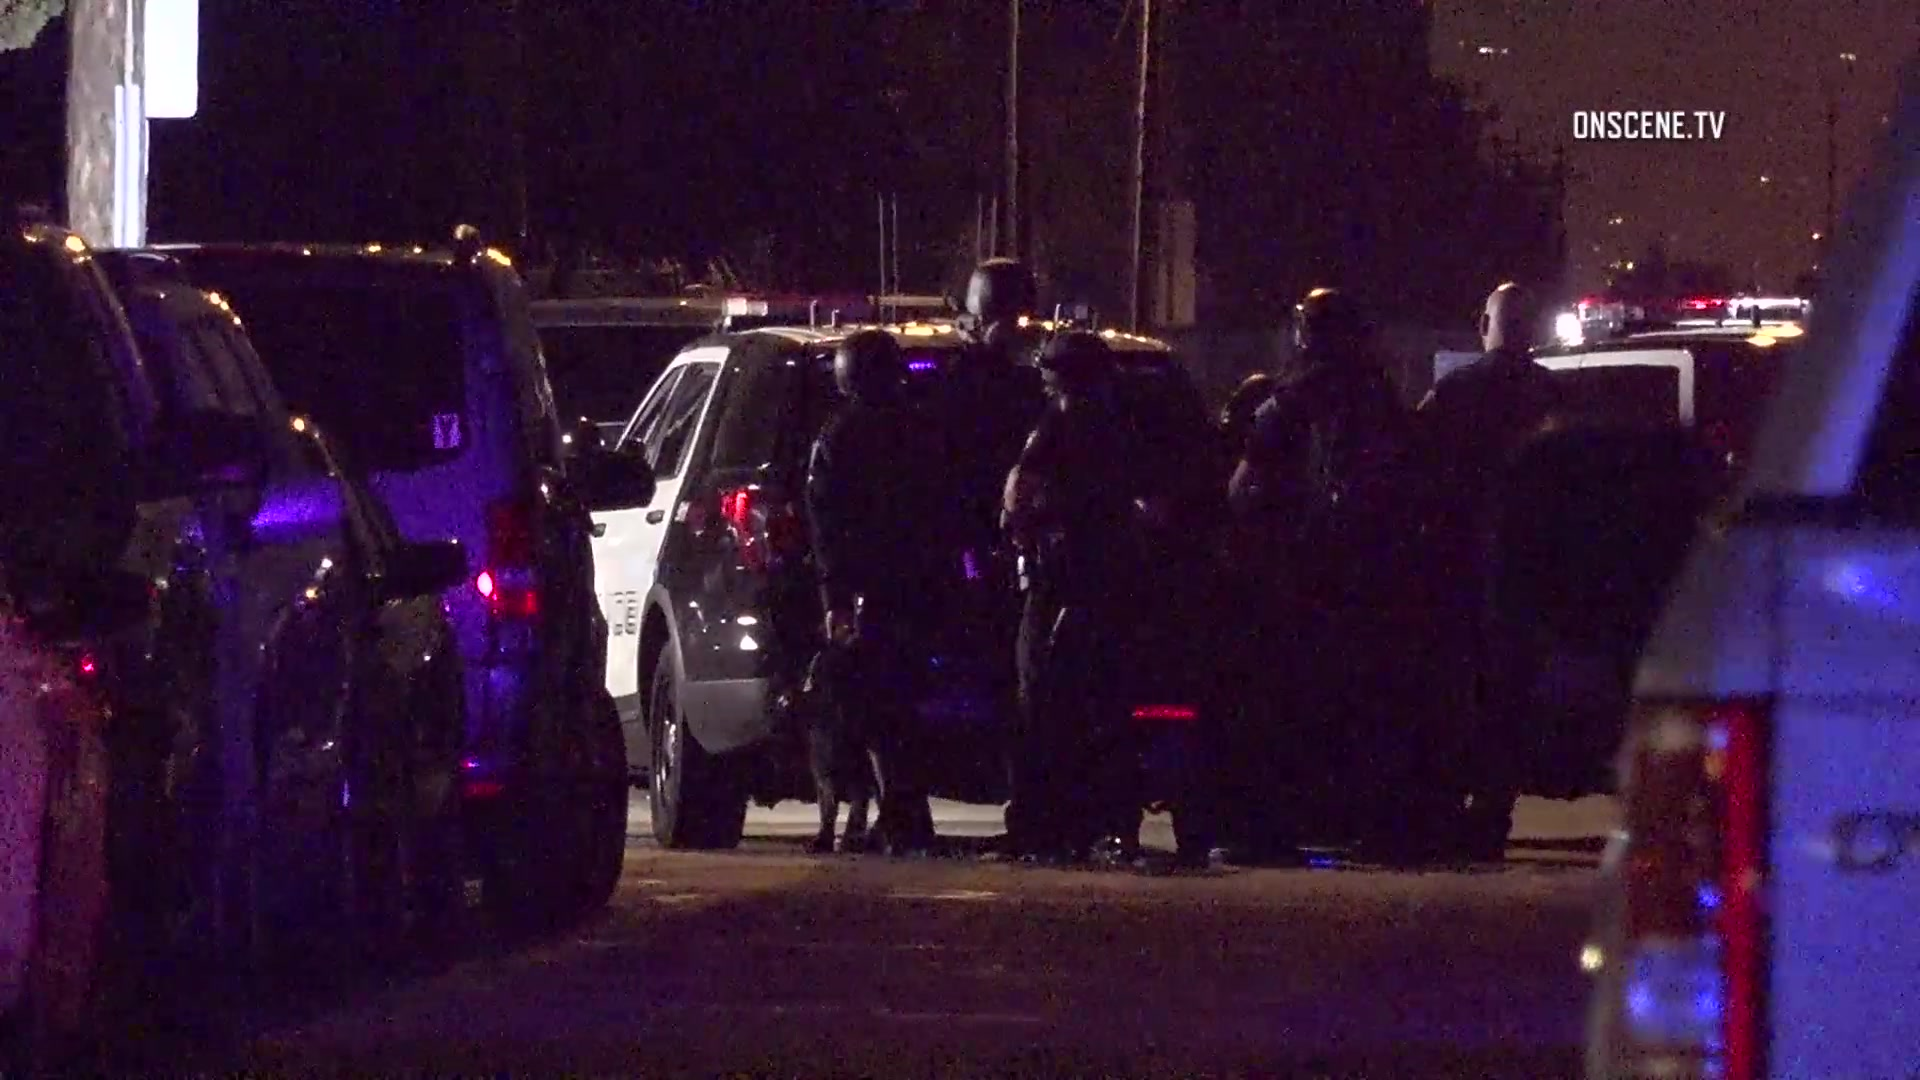 Armed Person Barricades Self Inside Police Patrol Vehicle in Garden Grove